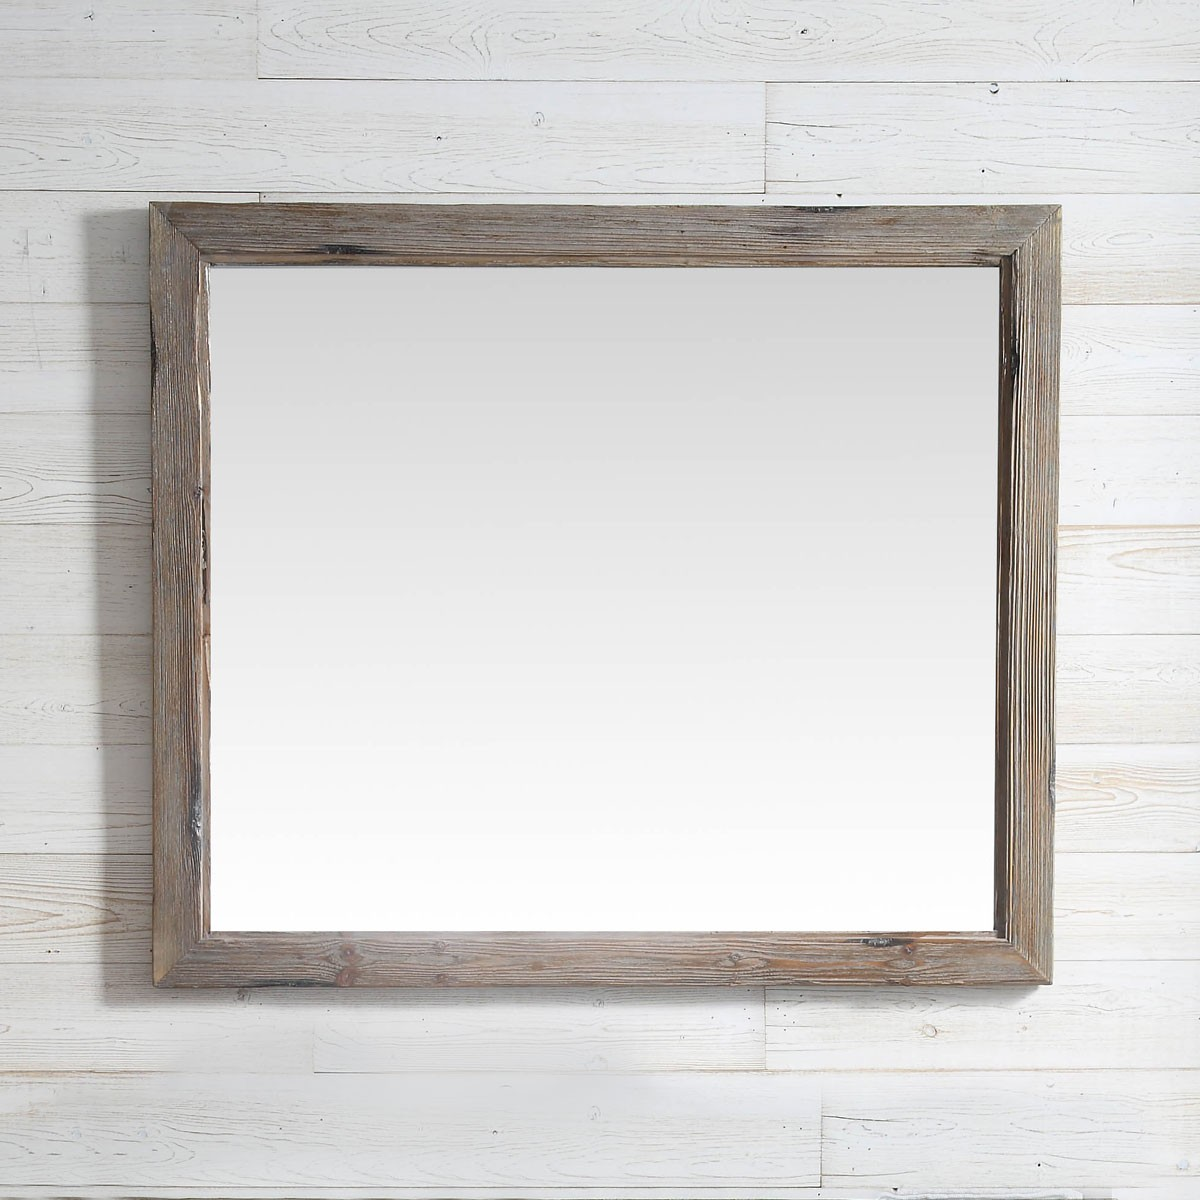 42 x 36 In Bath Vanity Décor Mirror with Fir Wood Frame (DK-WH9342-LB)